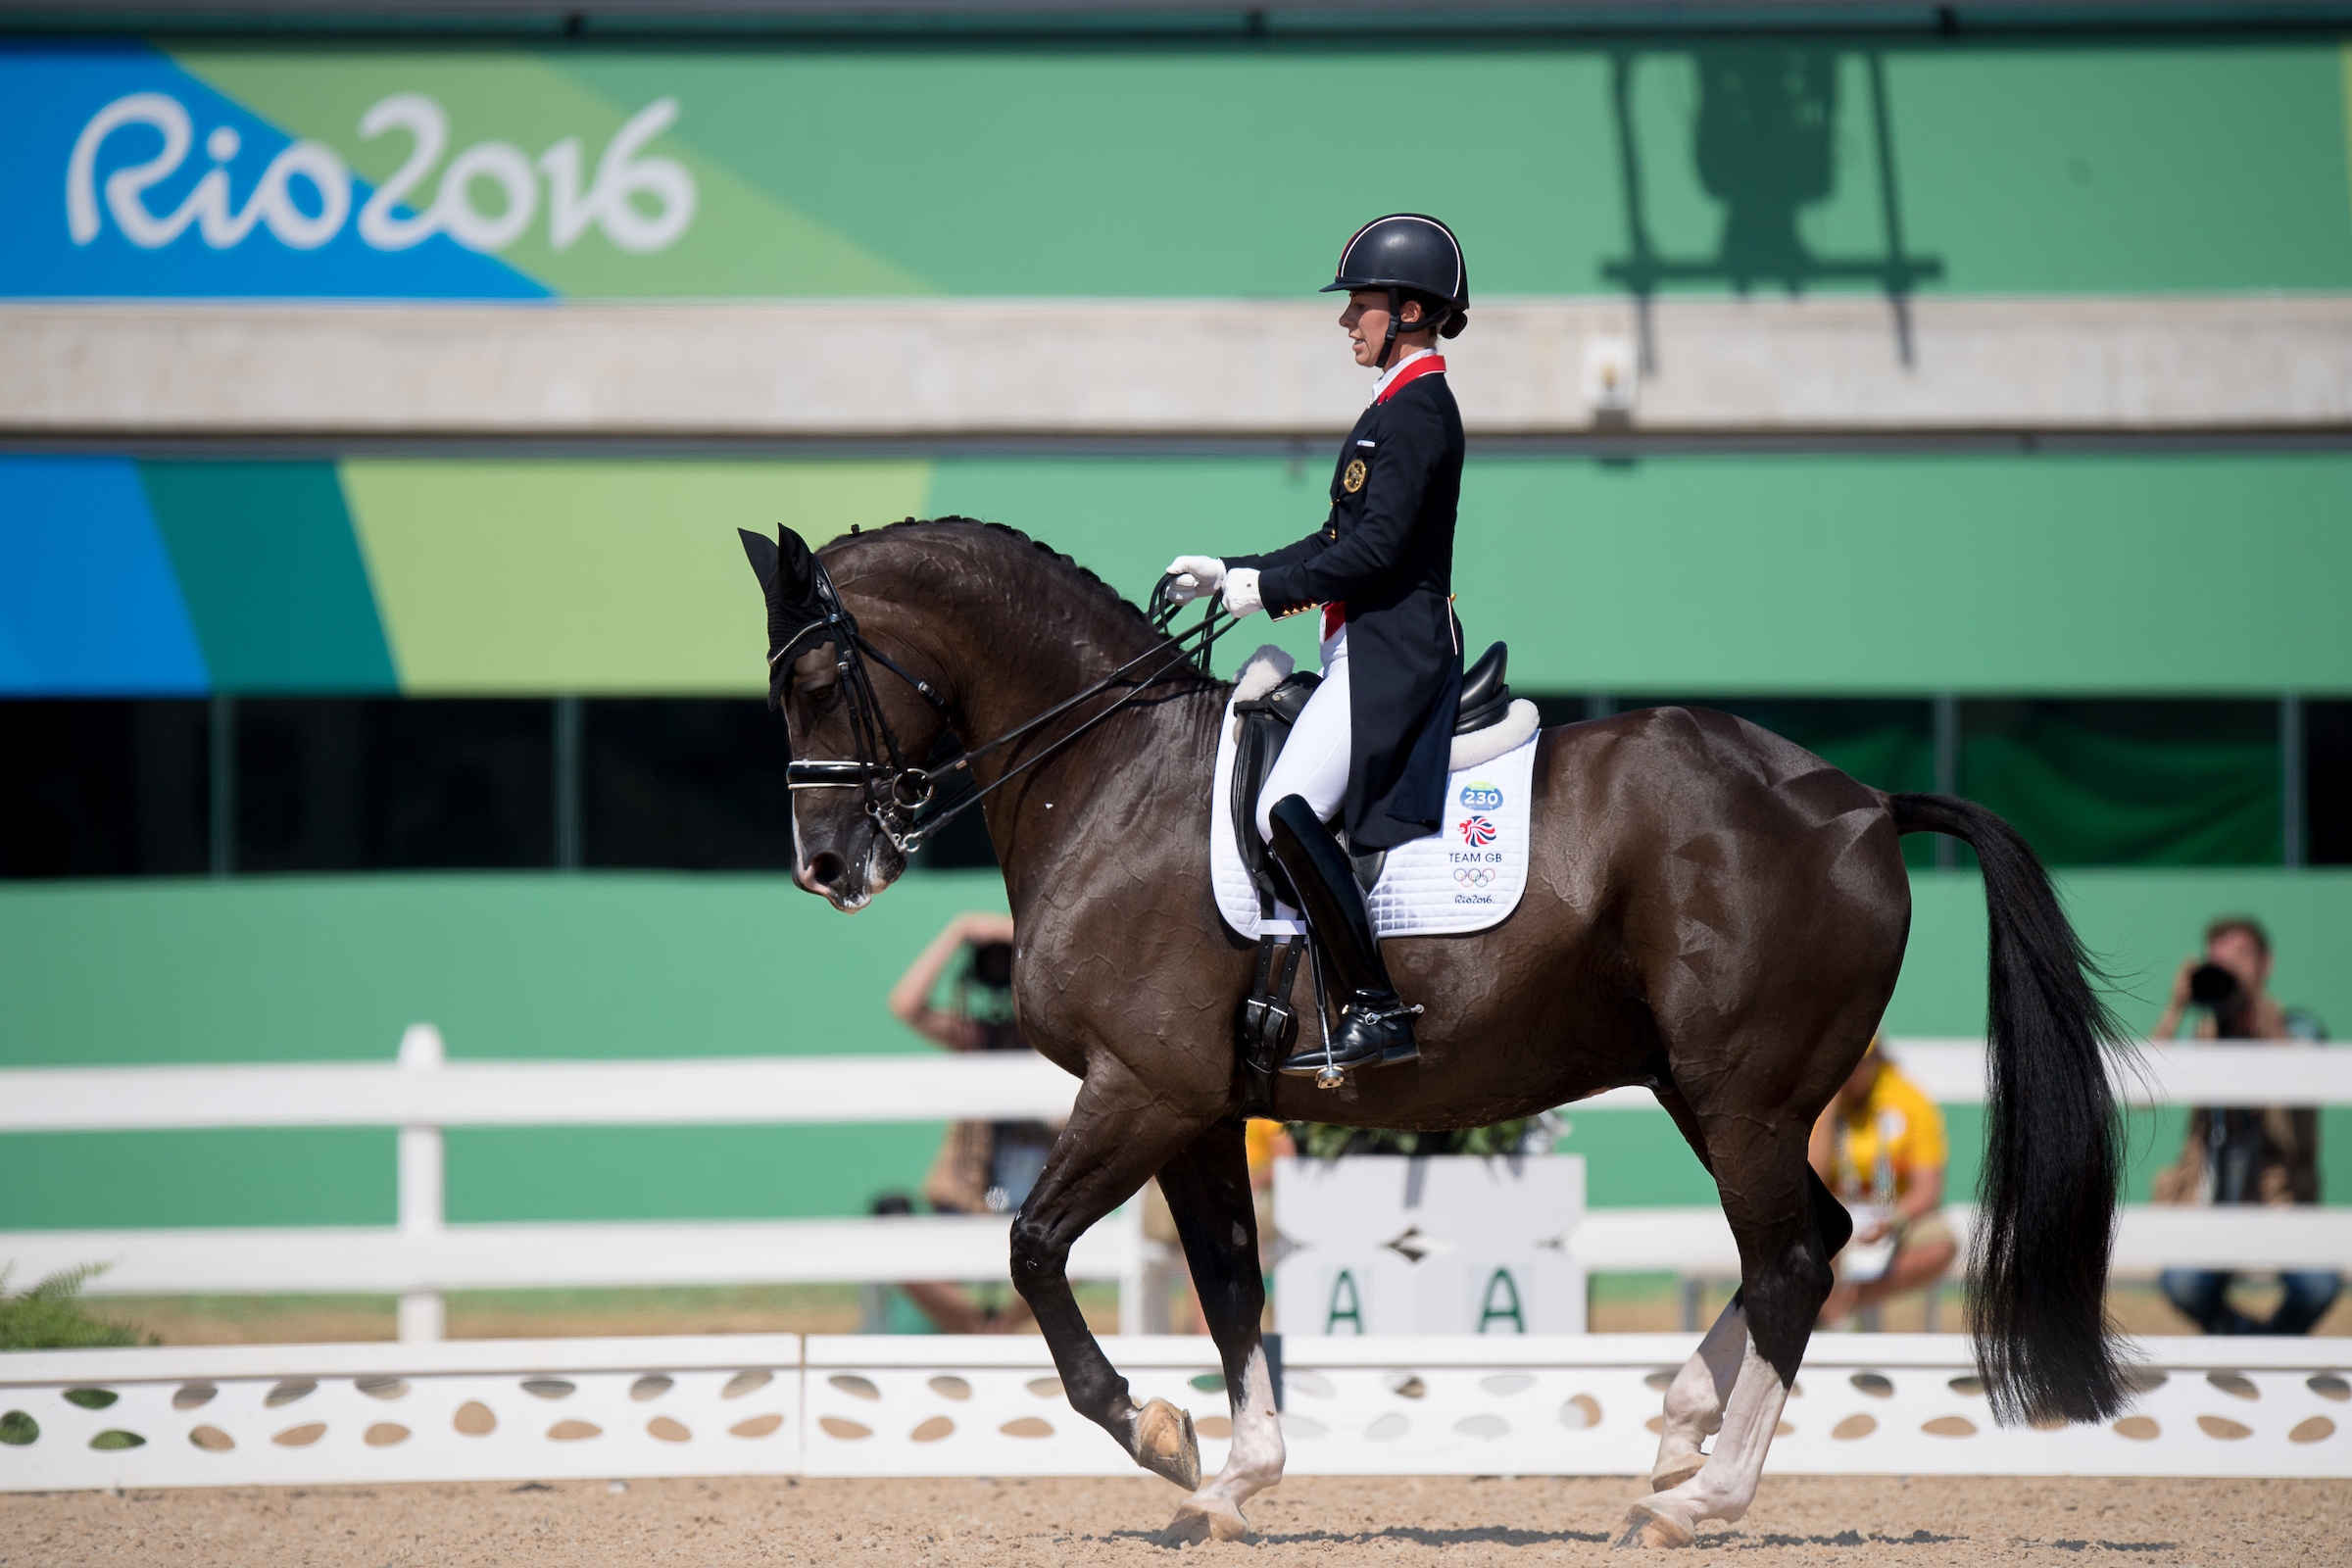 Charlotte Dujardin and Valegro take gold for their stunning performance (BEF/Jon Stroud Media)